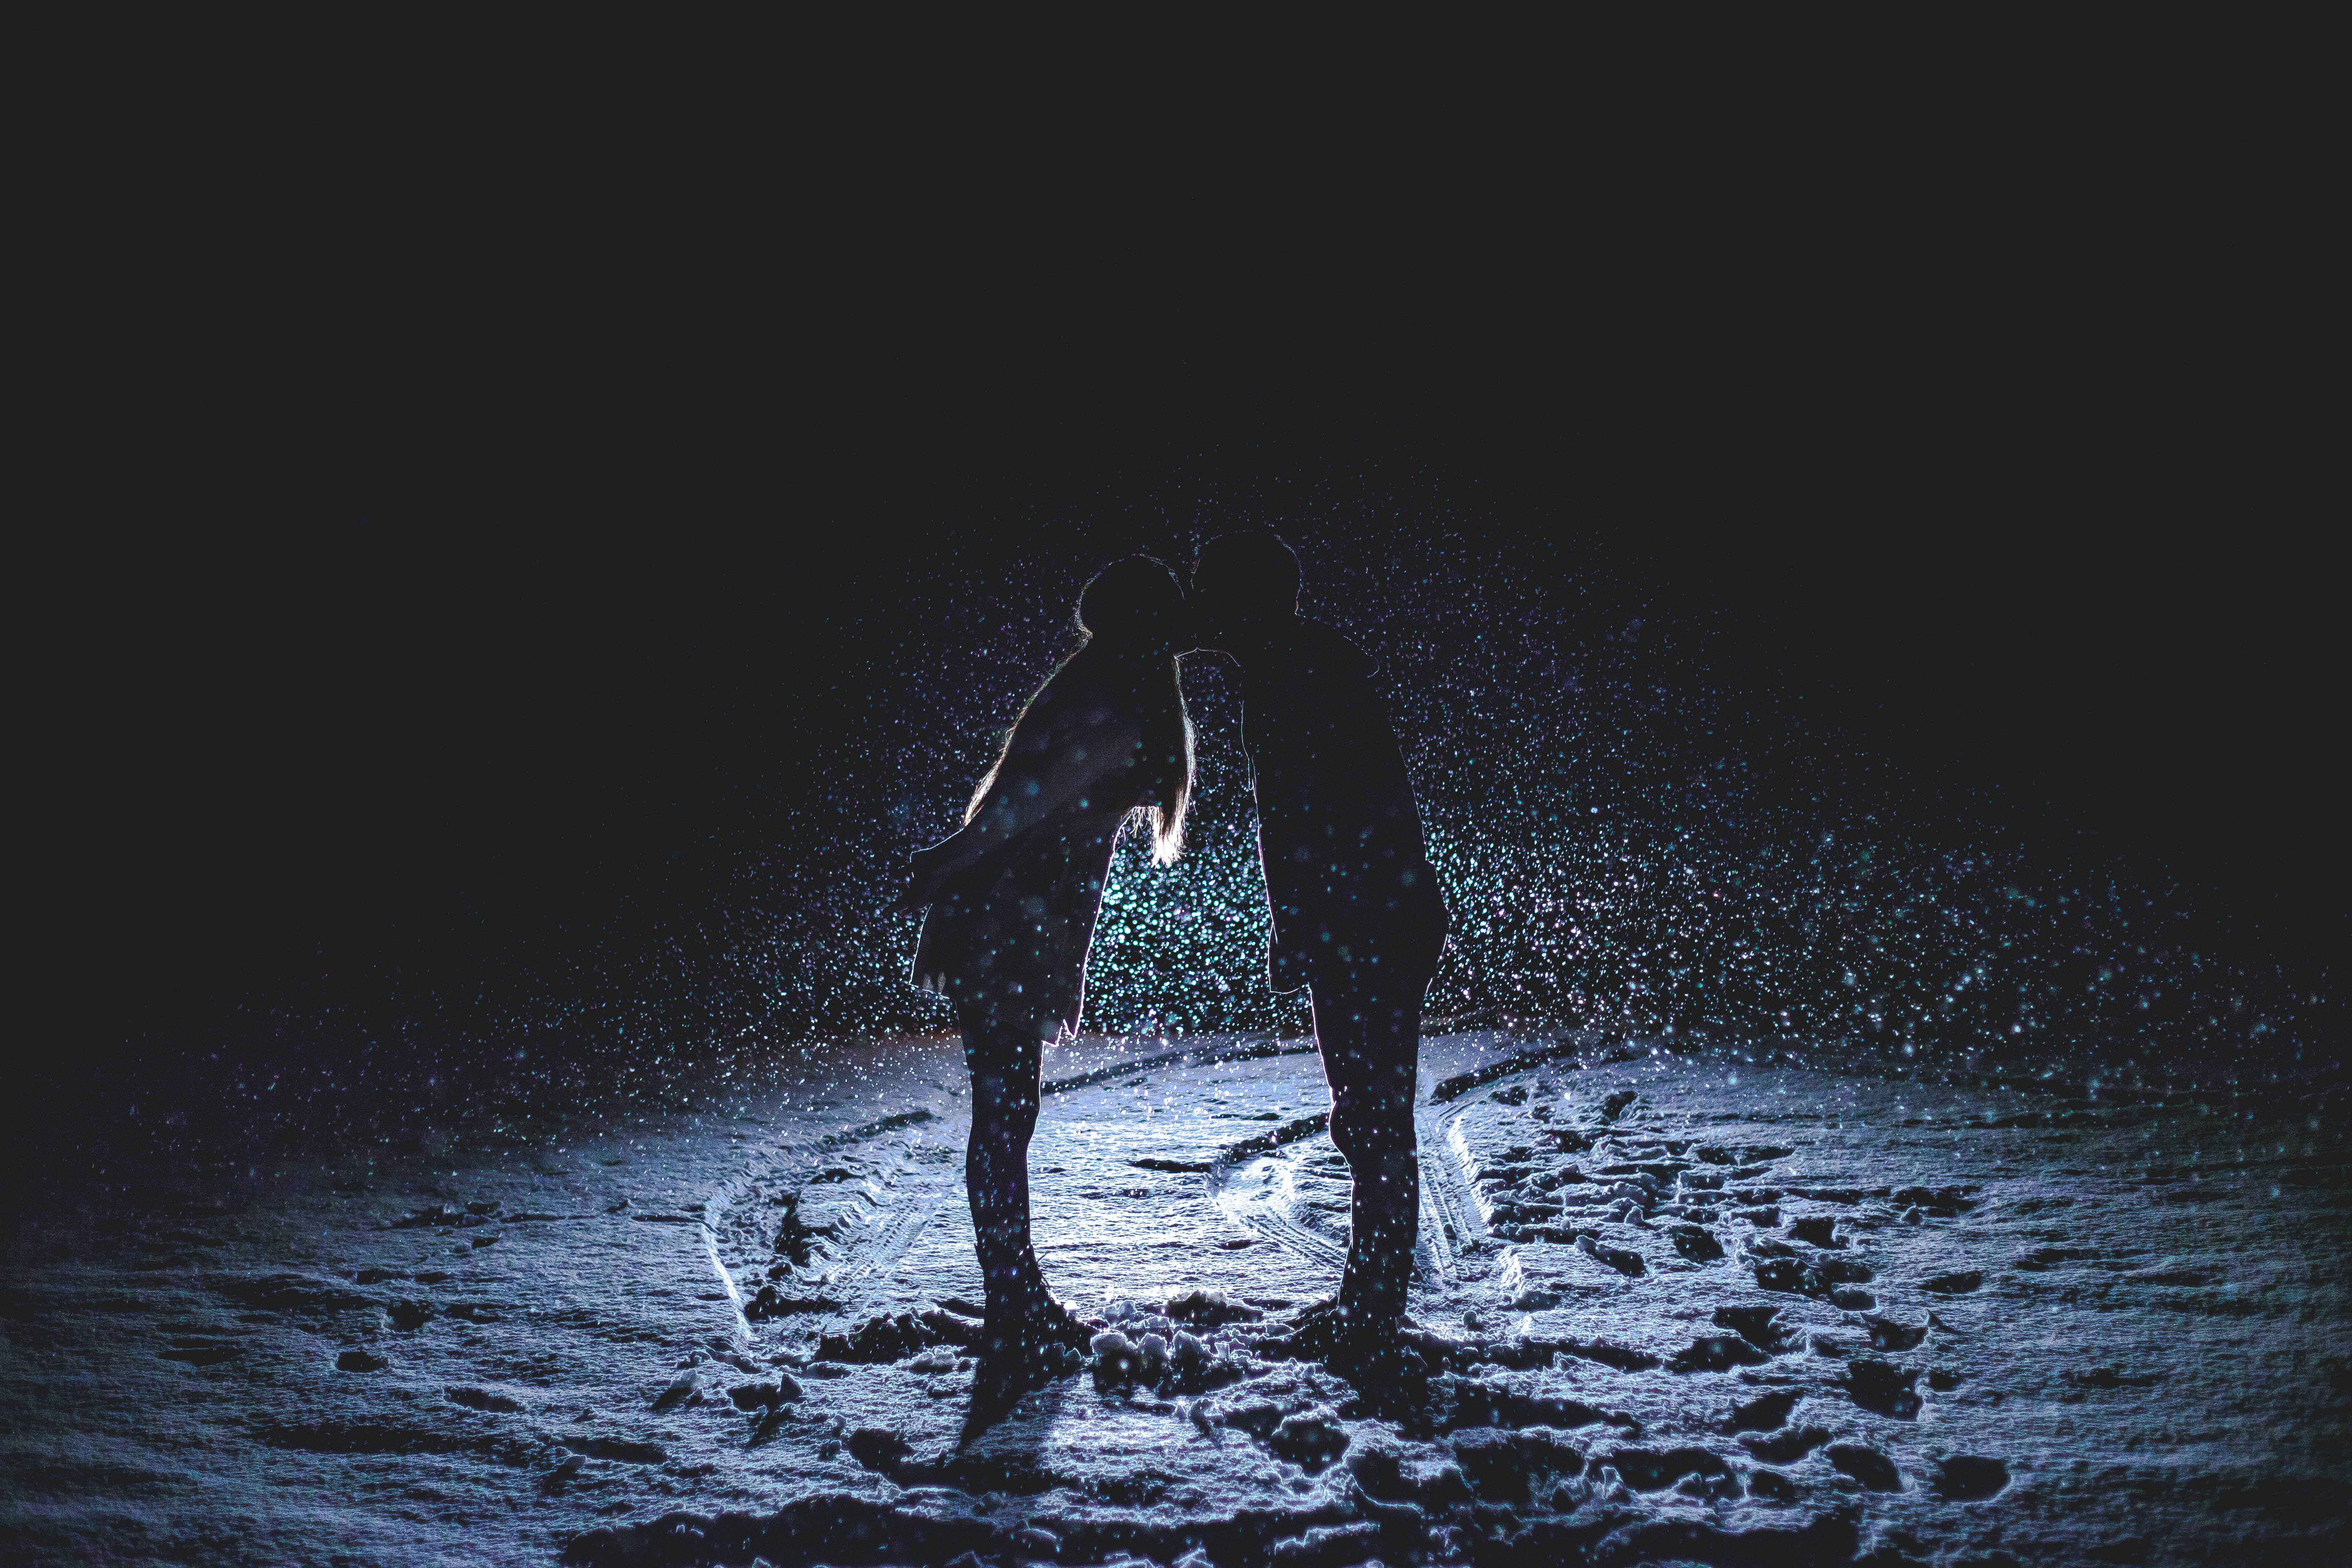 As snow falls around them, a couple kiss backlit at night